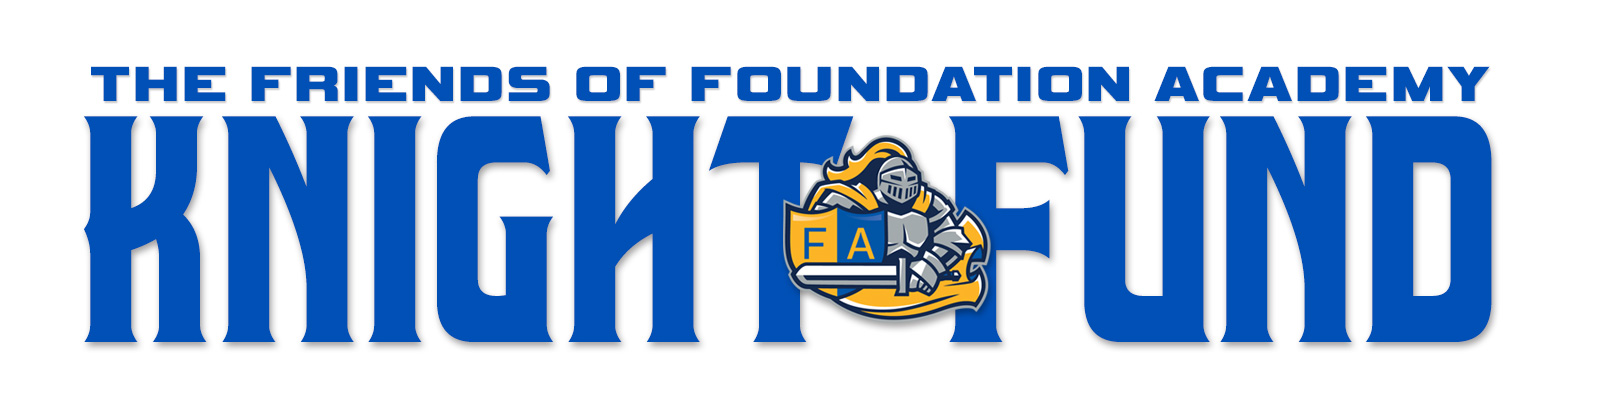 Friends of Foundation Academy Knight Fund